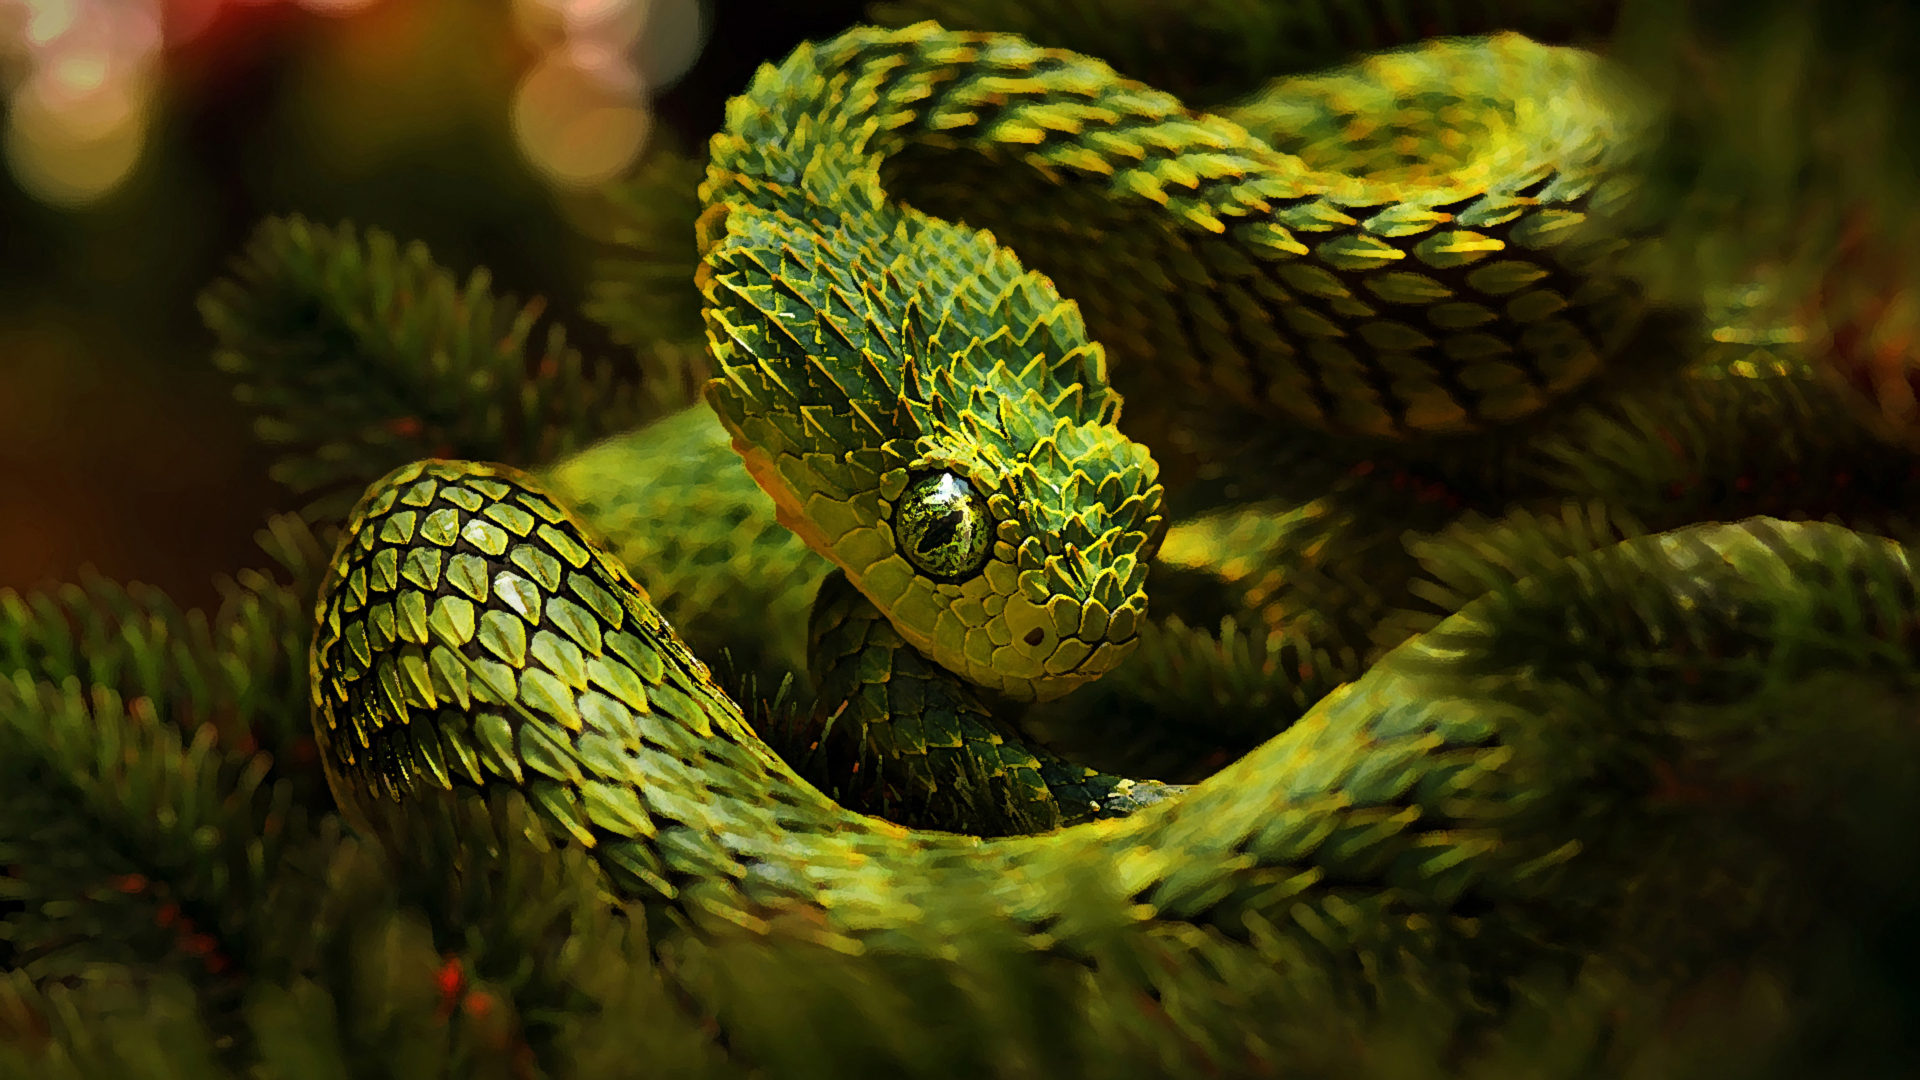 Lion Animal Wallpaper 3d Green Unusual Snakes Cactus Camouflage Hd Wallpaper